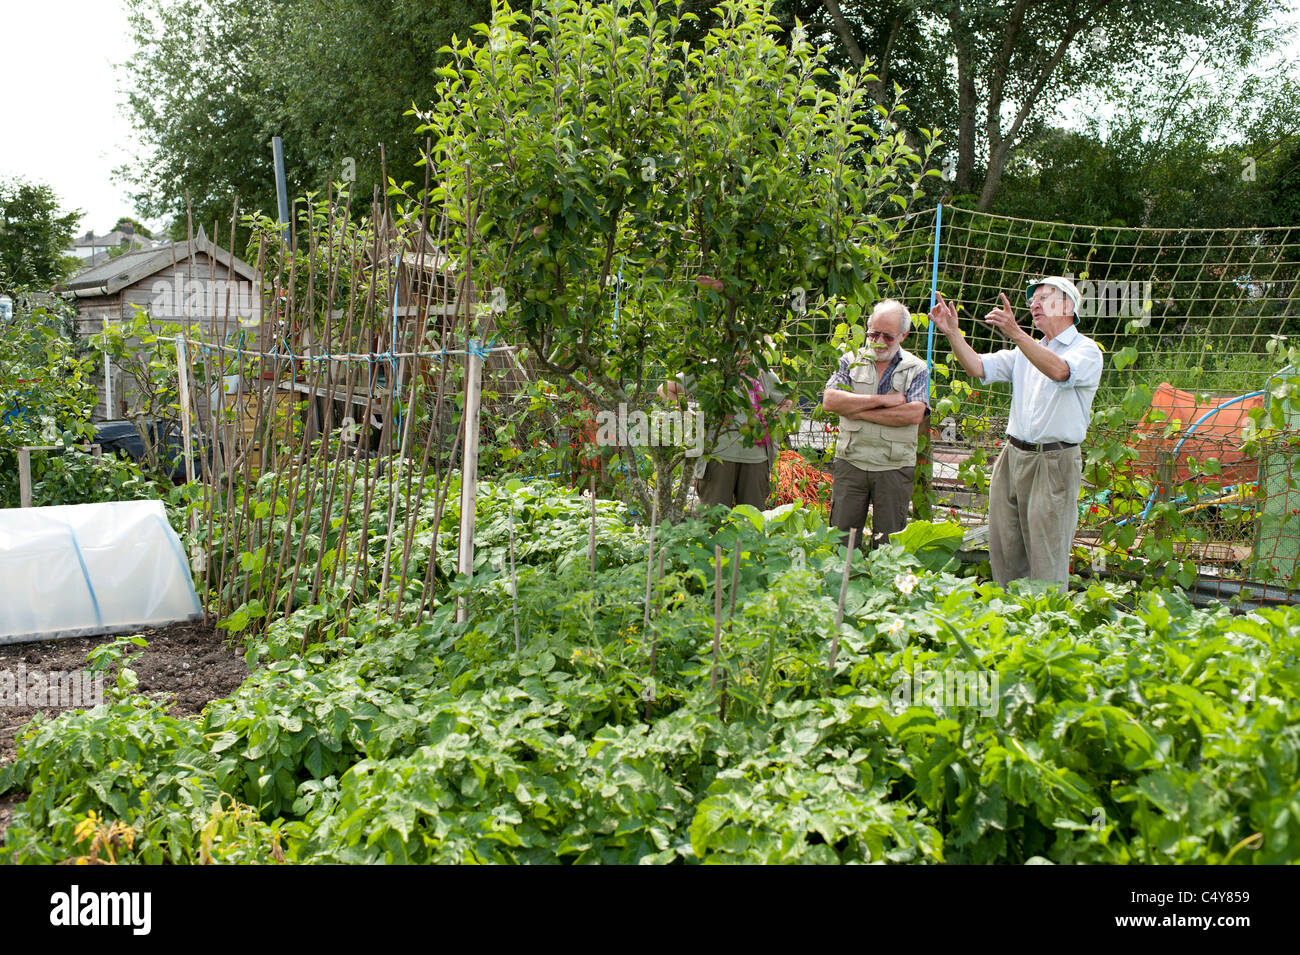 Allotment Gardens Open To The Public On National Garden Society Open Day,  Aberystwyth Wales UK